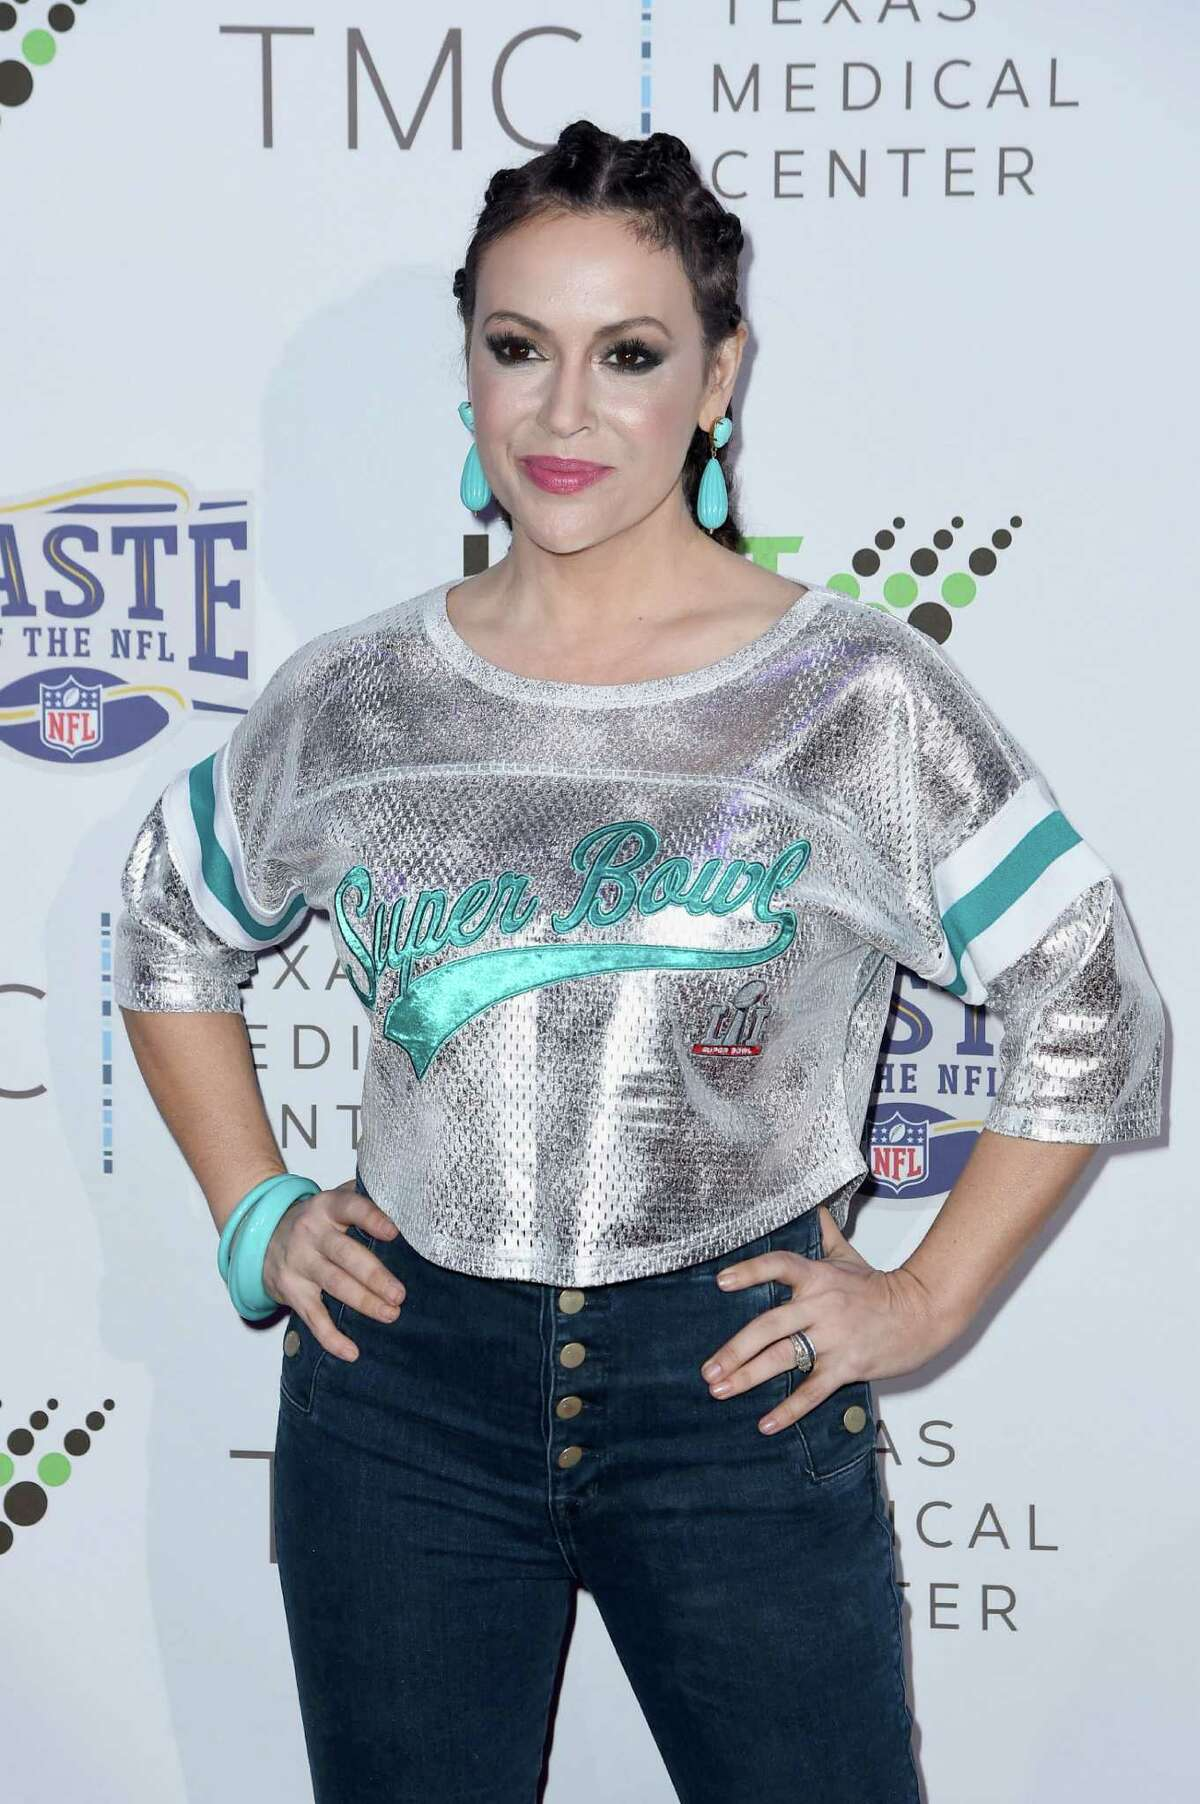 HOUSTON, TX - FEBRUARY 04: Actress/Founder of Touch by Alyssa Milano, Alyssa Milano (R) attends the Taste Of The NFL 'Party With A Purpose' at Houston University on February 4, 2017 in Houston. at University of Houston on February 4, 2017 in Houston, Texas.